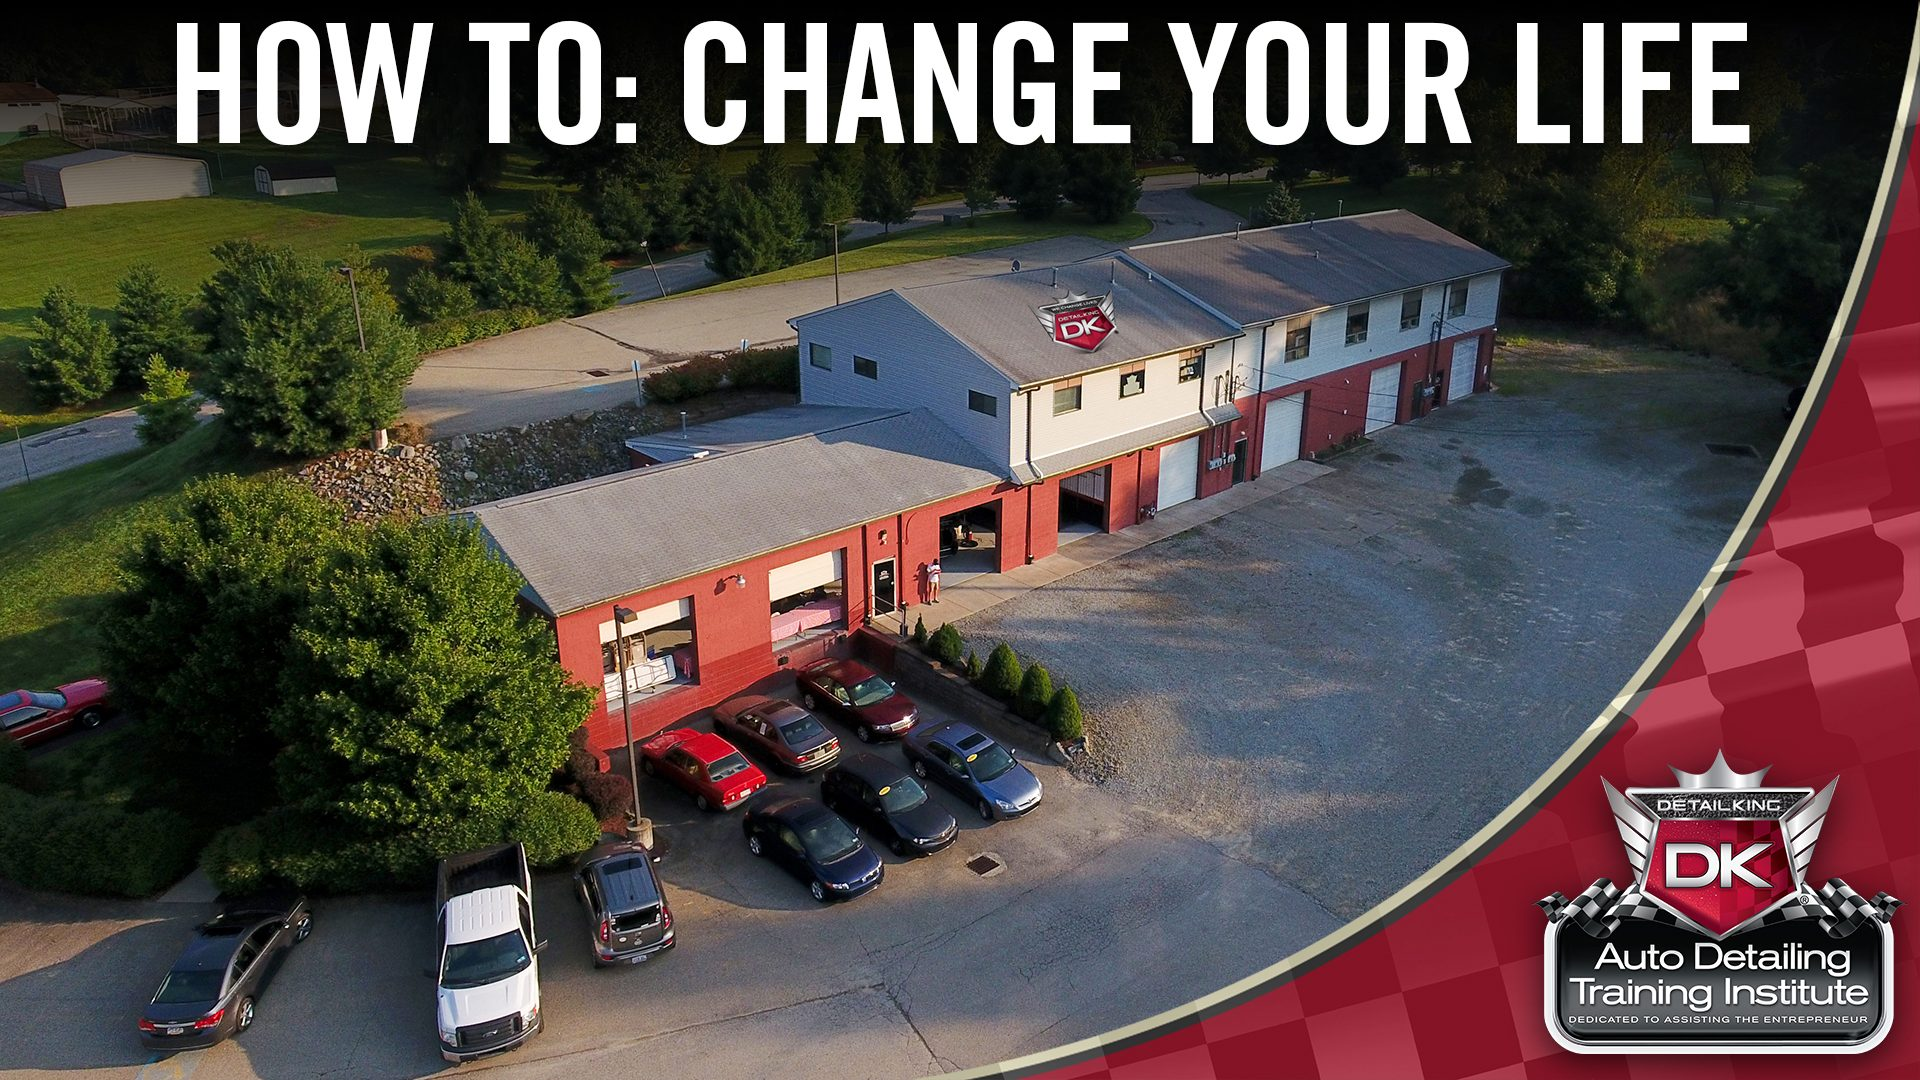 How To: Change Your Life – Detail King Auto Detailing Training Institute